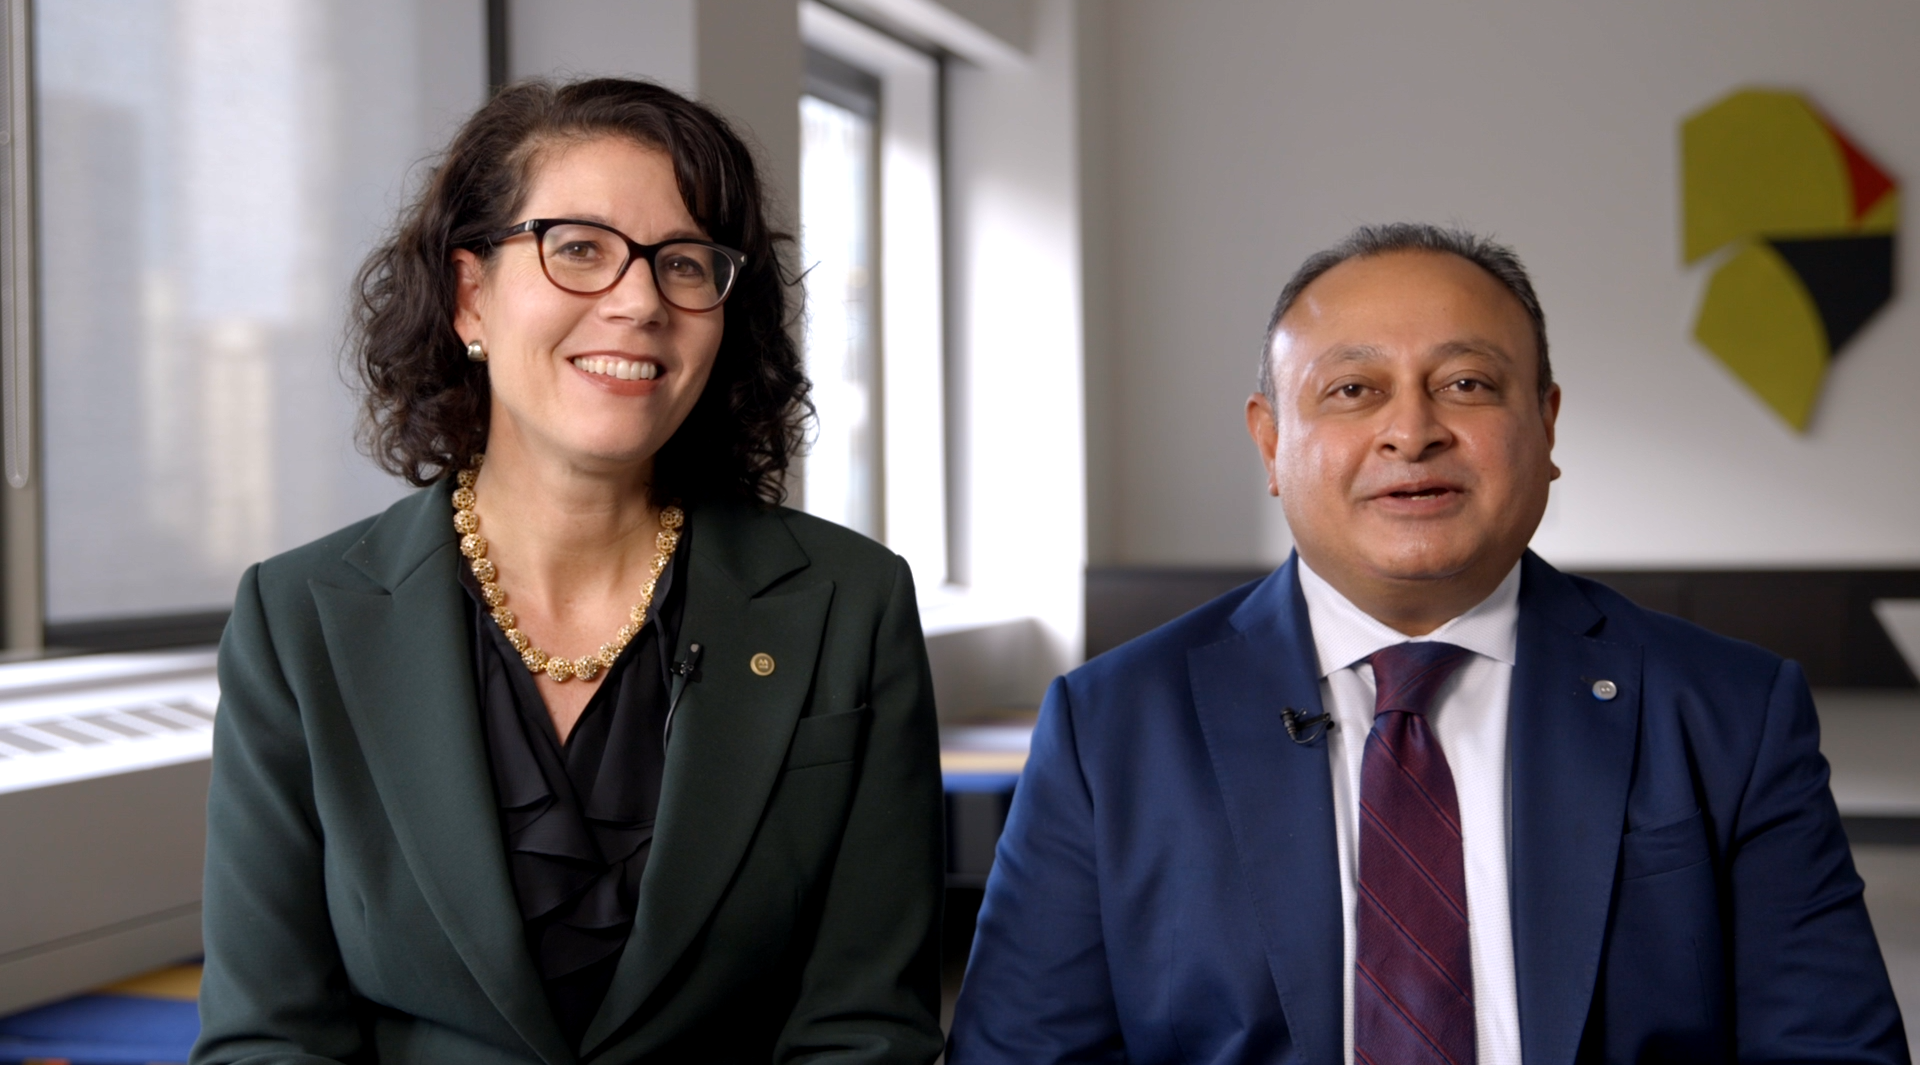 Christine Cooper and Nadim Hirji, Co-Heads of BMO Commercial Bank.